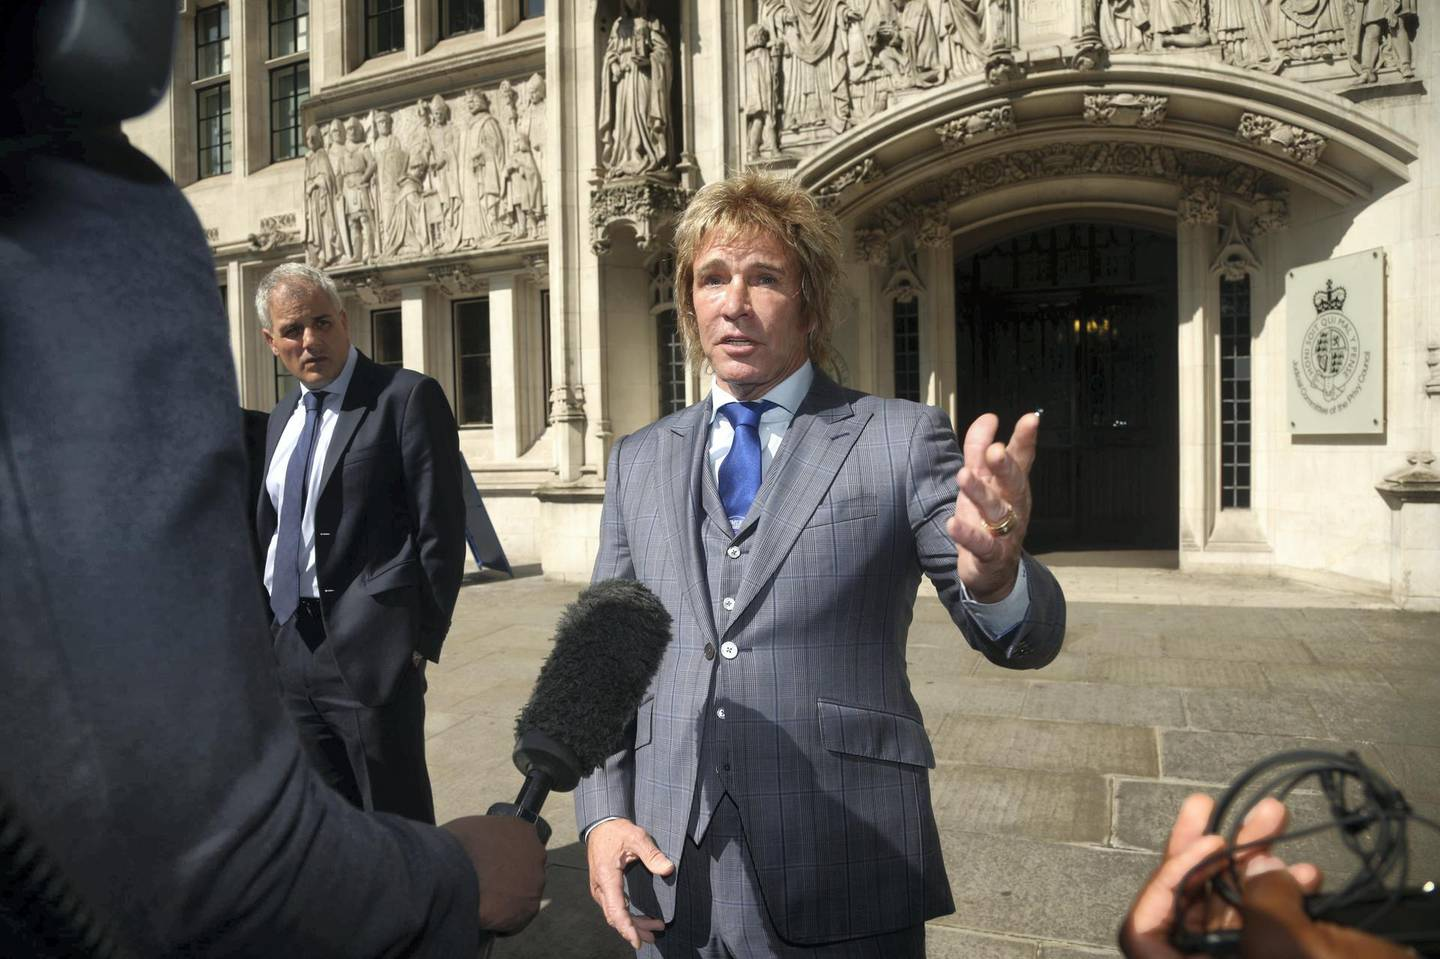 Pimlico Plumbers chief executive Charlie Mullins leaves the UK Supreme Court, Parliament Square, London, following the ruling in the case involving plumbers contracts, which is said will have 'huge ramifications' for the gig economy. (Photo by Yui Mok/PA Images via Getty Images)